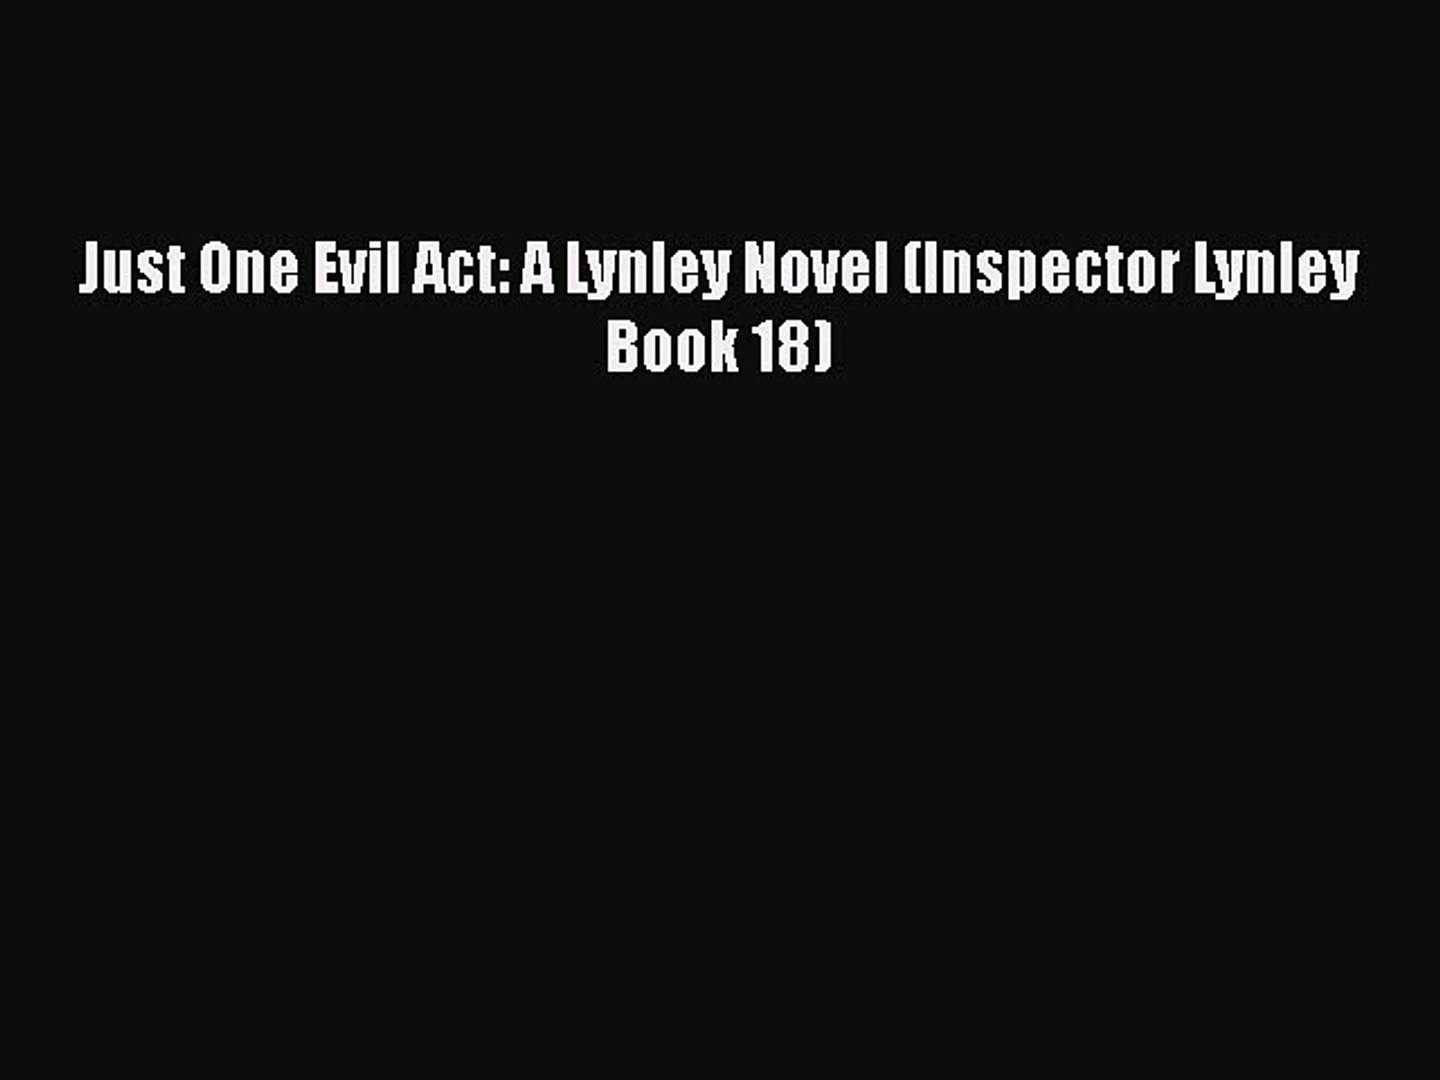 Book Review: Just One Evil Act by Elizabeth George